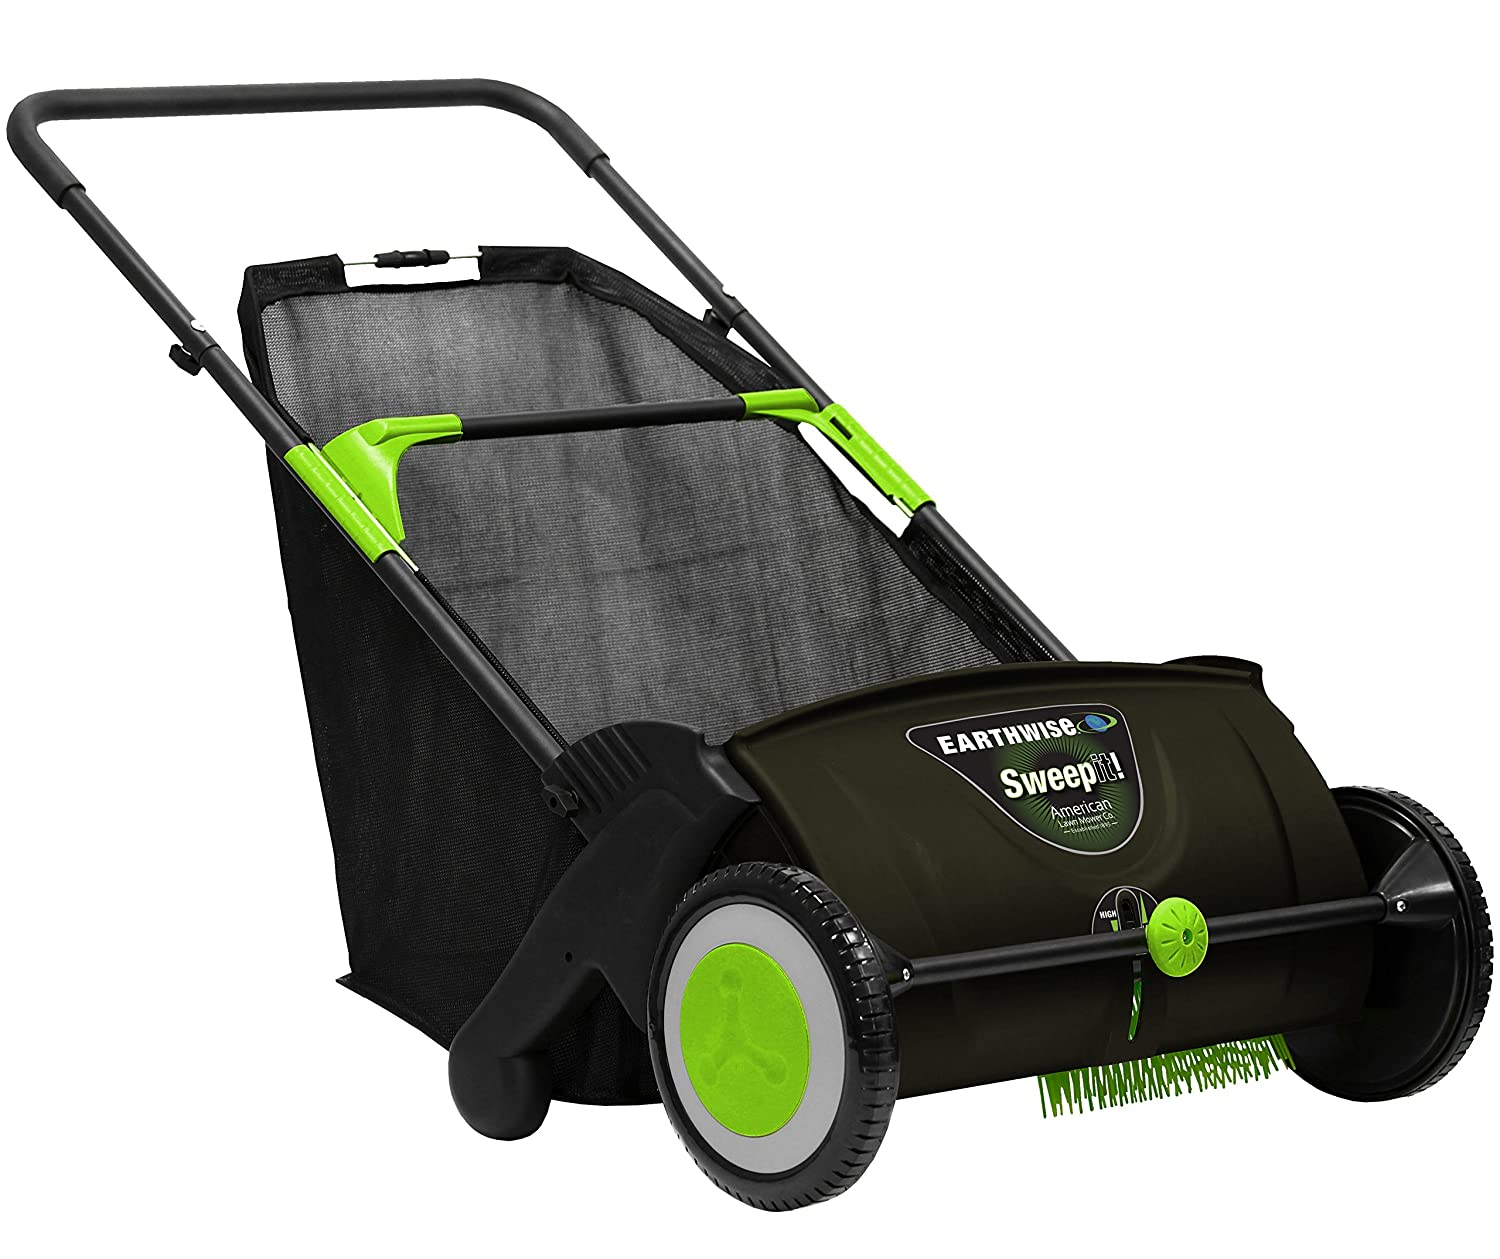 Earthwise LSW70021 Push Lawn Sweeper